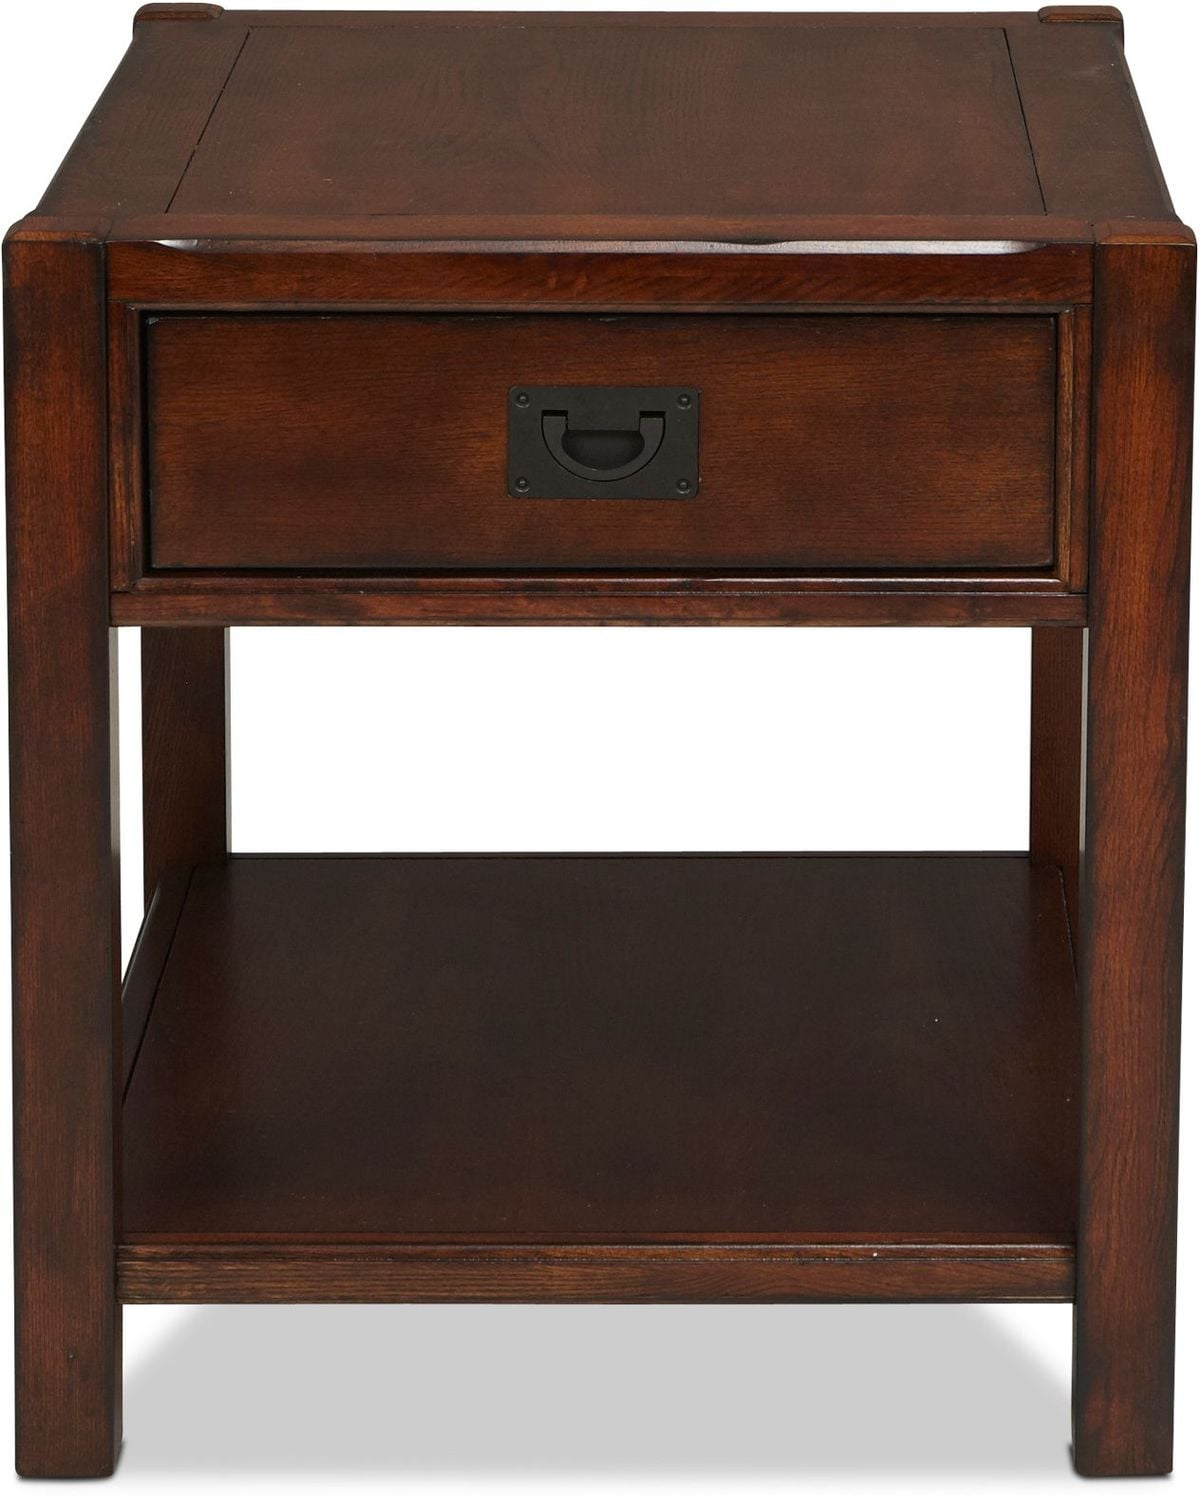 Sumpter End Table - Distressed Chestnut